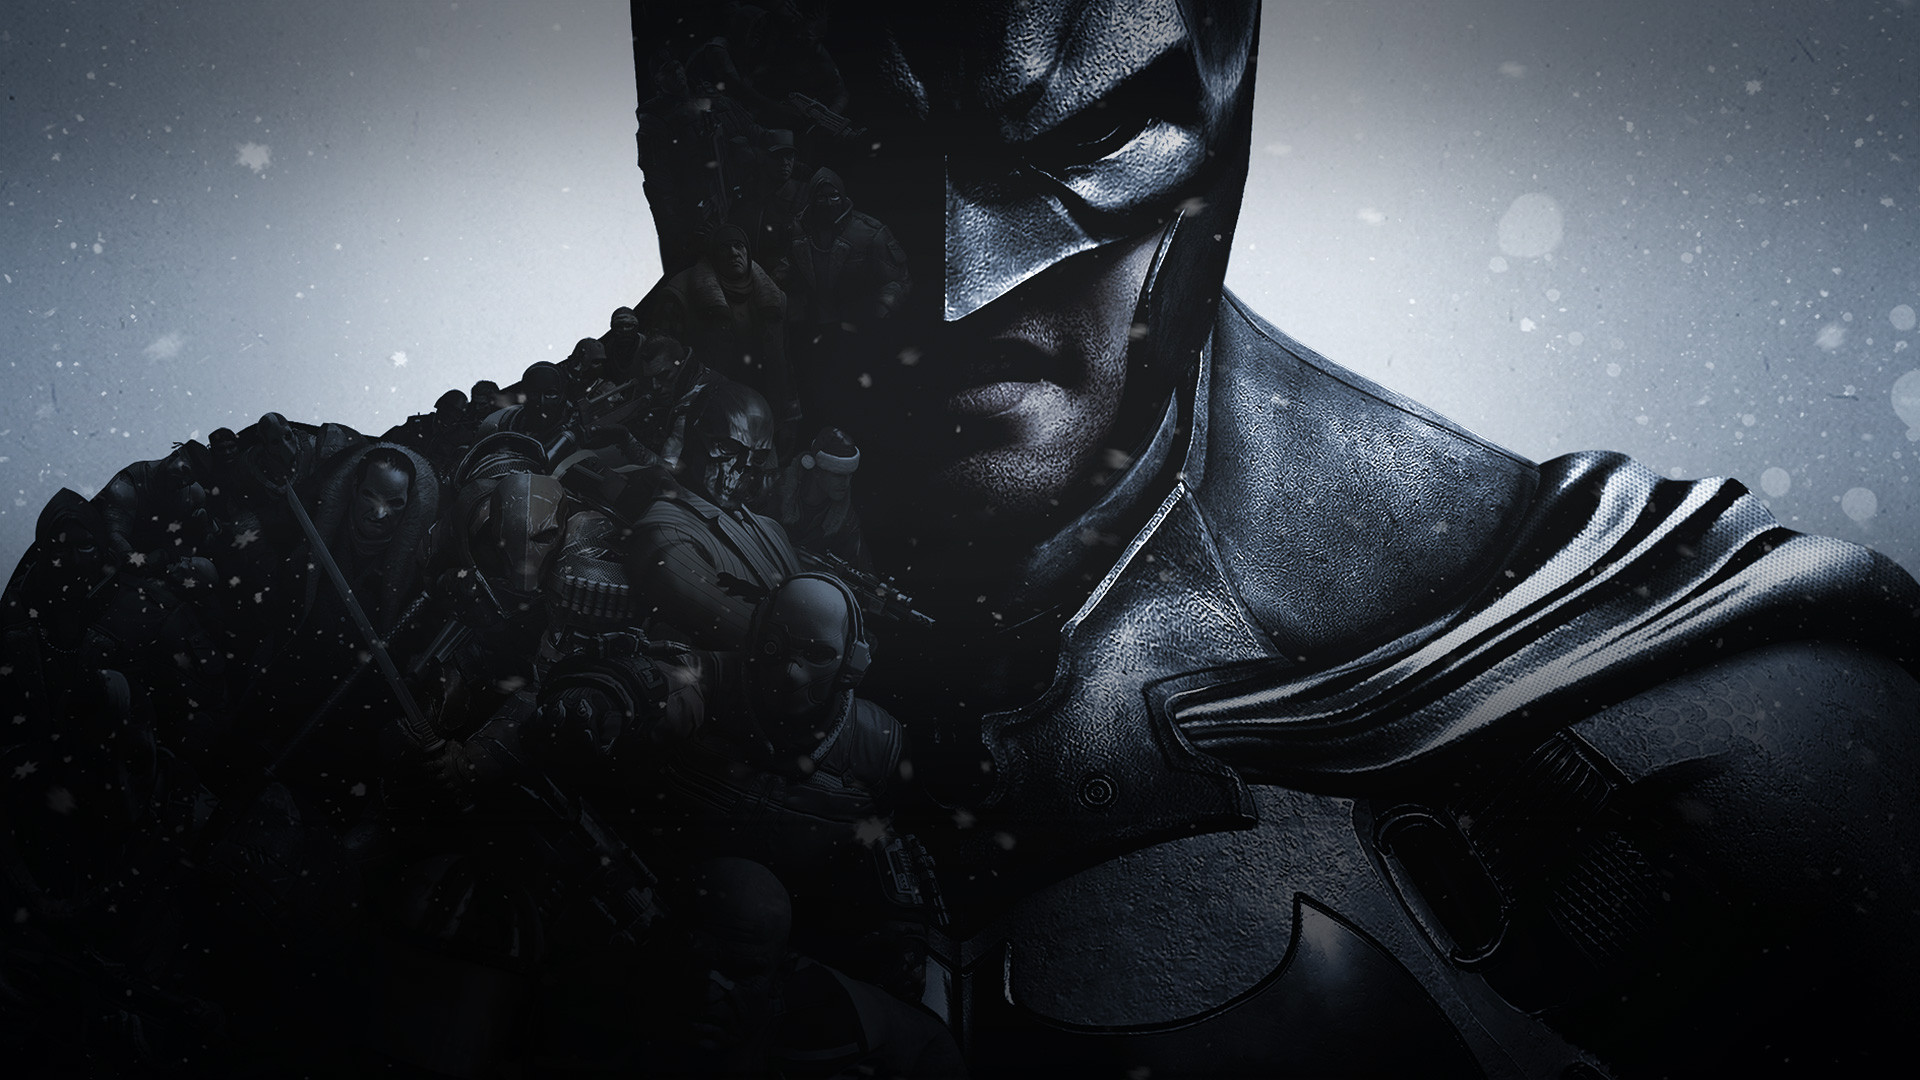 1920x1080 Movie Wallpaper: Batman Vs Superman Desktop Wallpaper Wallpaper HD .